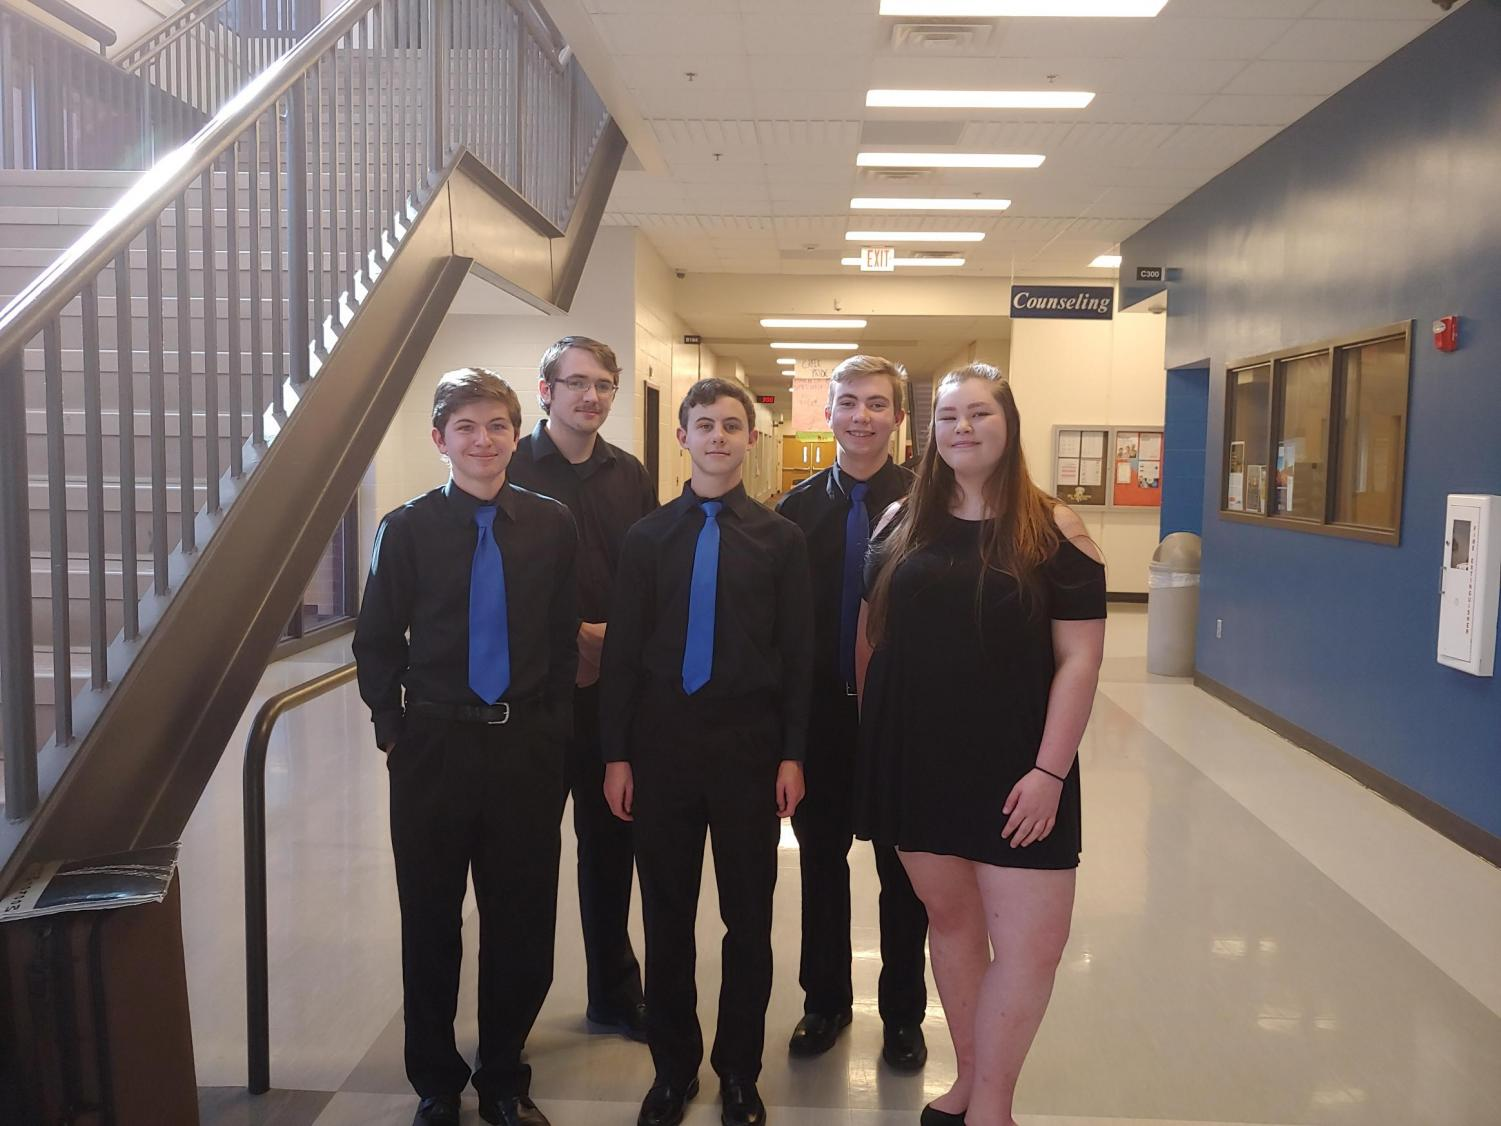 Doherty orchestra students pose at their competition on April 5th.